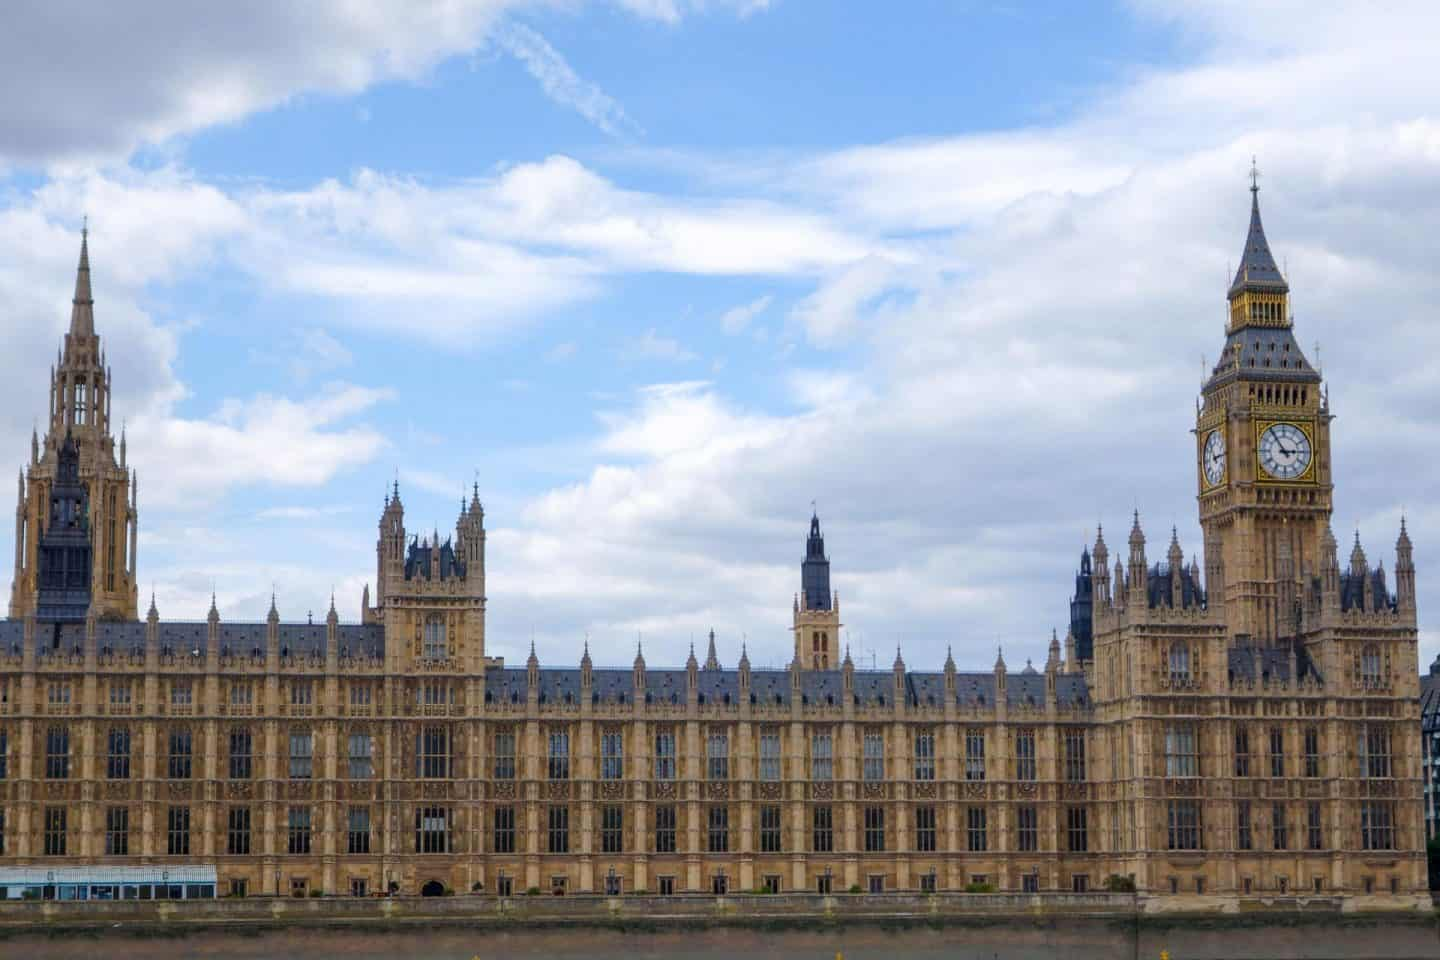 London loves: Houses of Parliament afternoon tea and tour